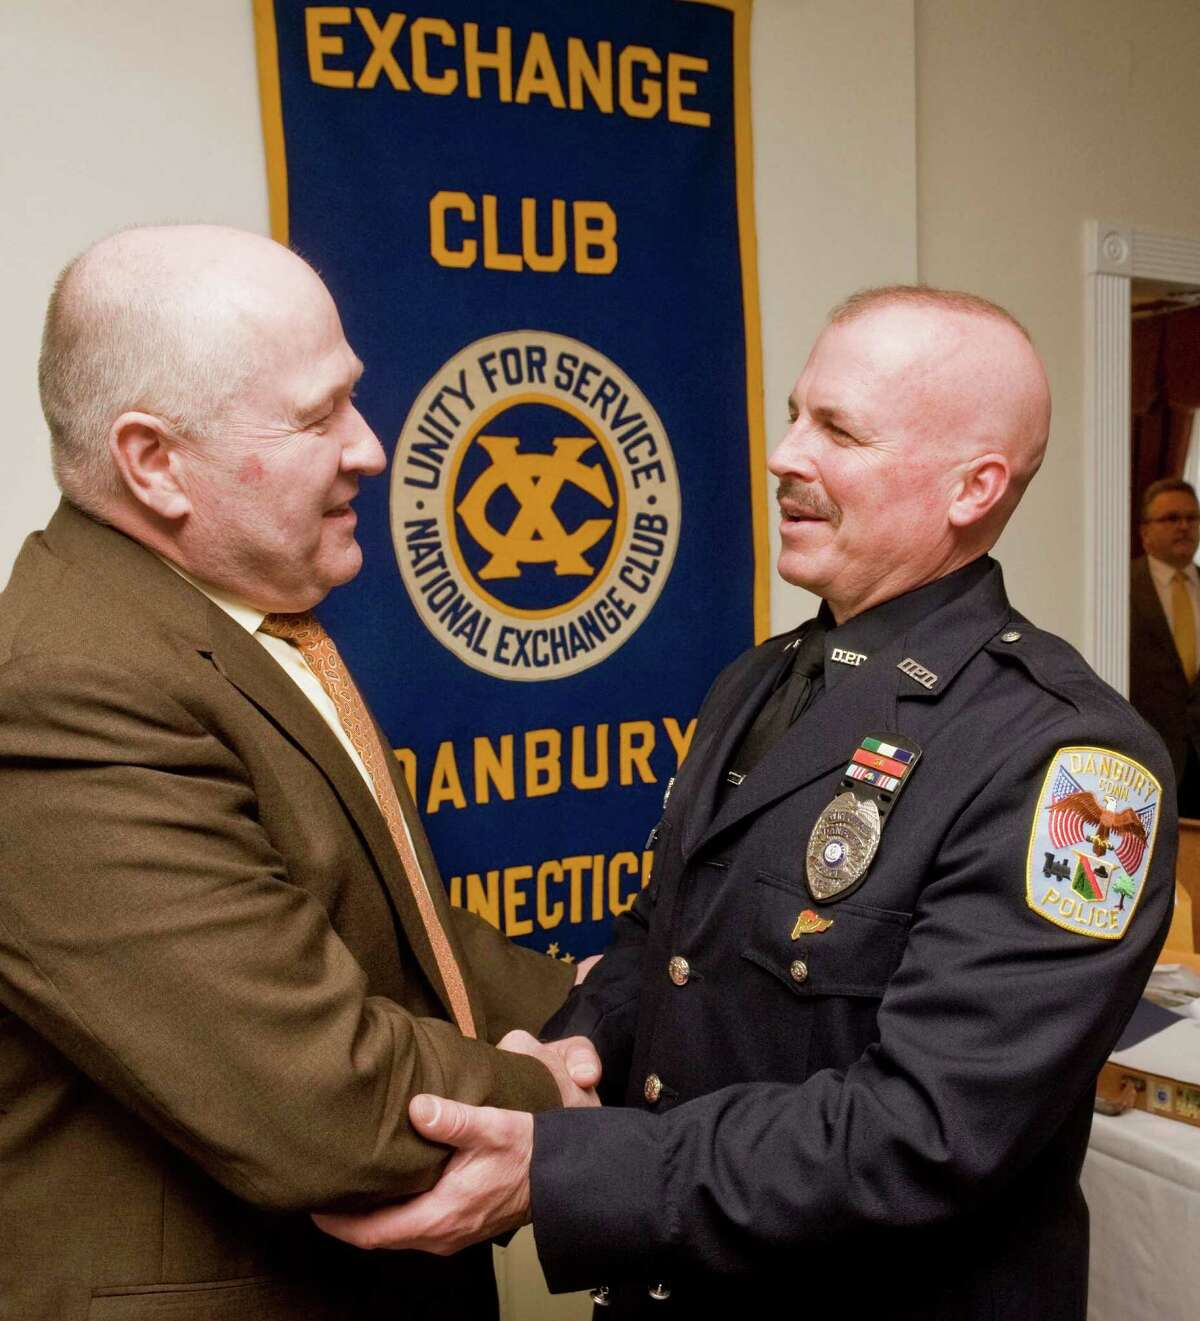 Danbury police chief Alan Baker, left, congratulates Danbury police Officer Joseph Pooler who is being honored as City of Danbury Police Officer of the Year by The Exchange Club of Danbury at Anthonyís Lake Club in Danbury. Thursday, April 16, 2015